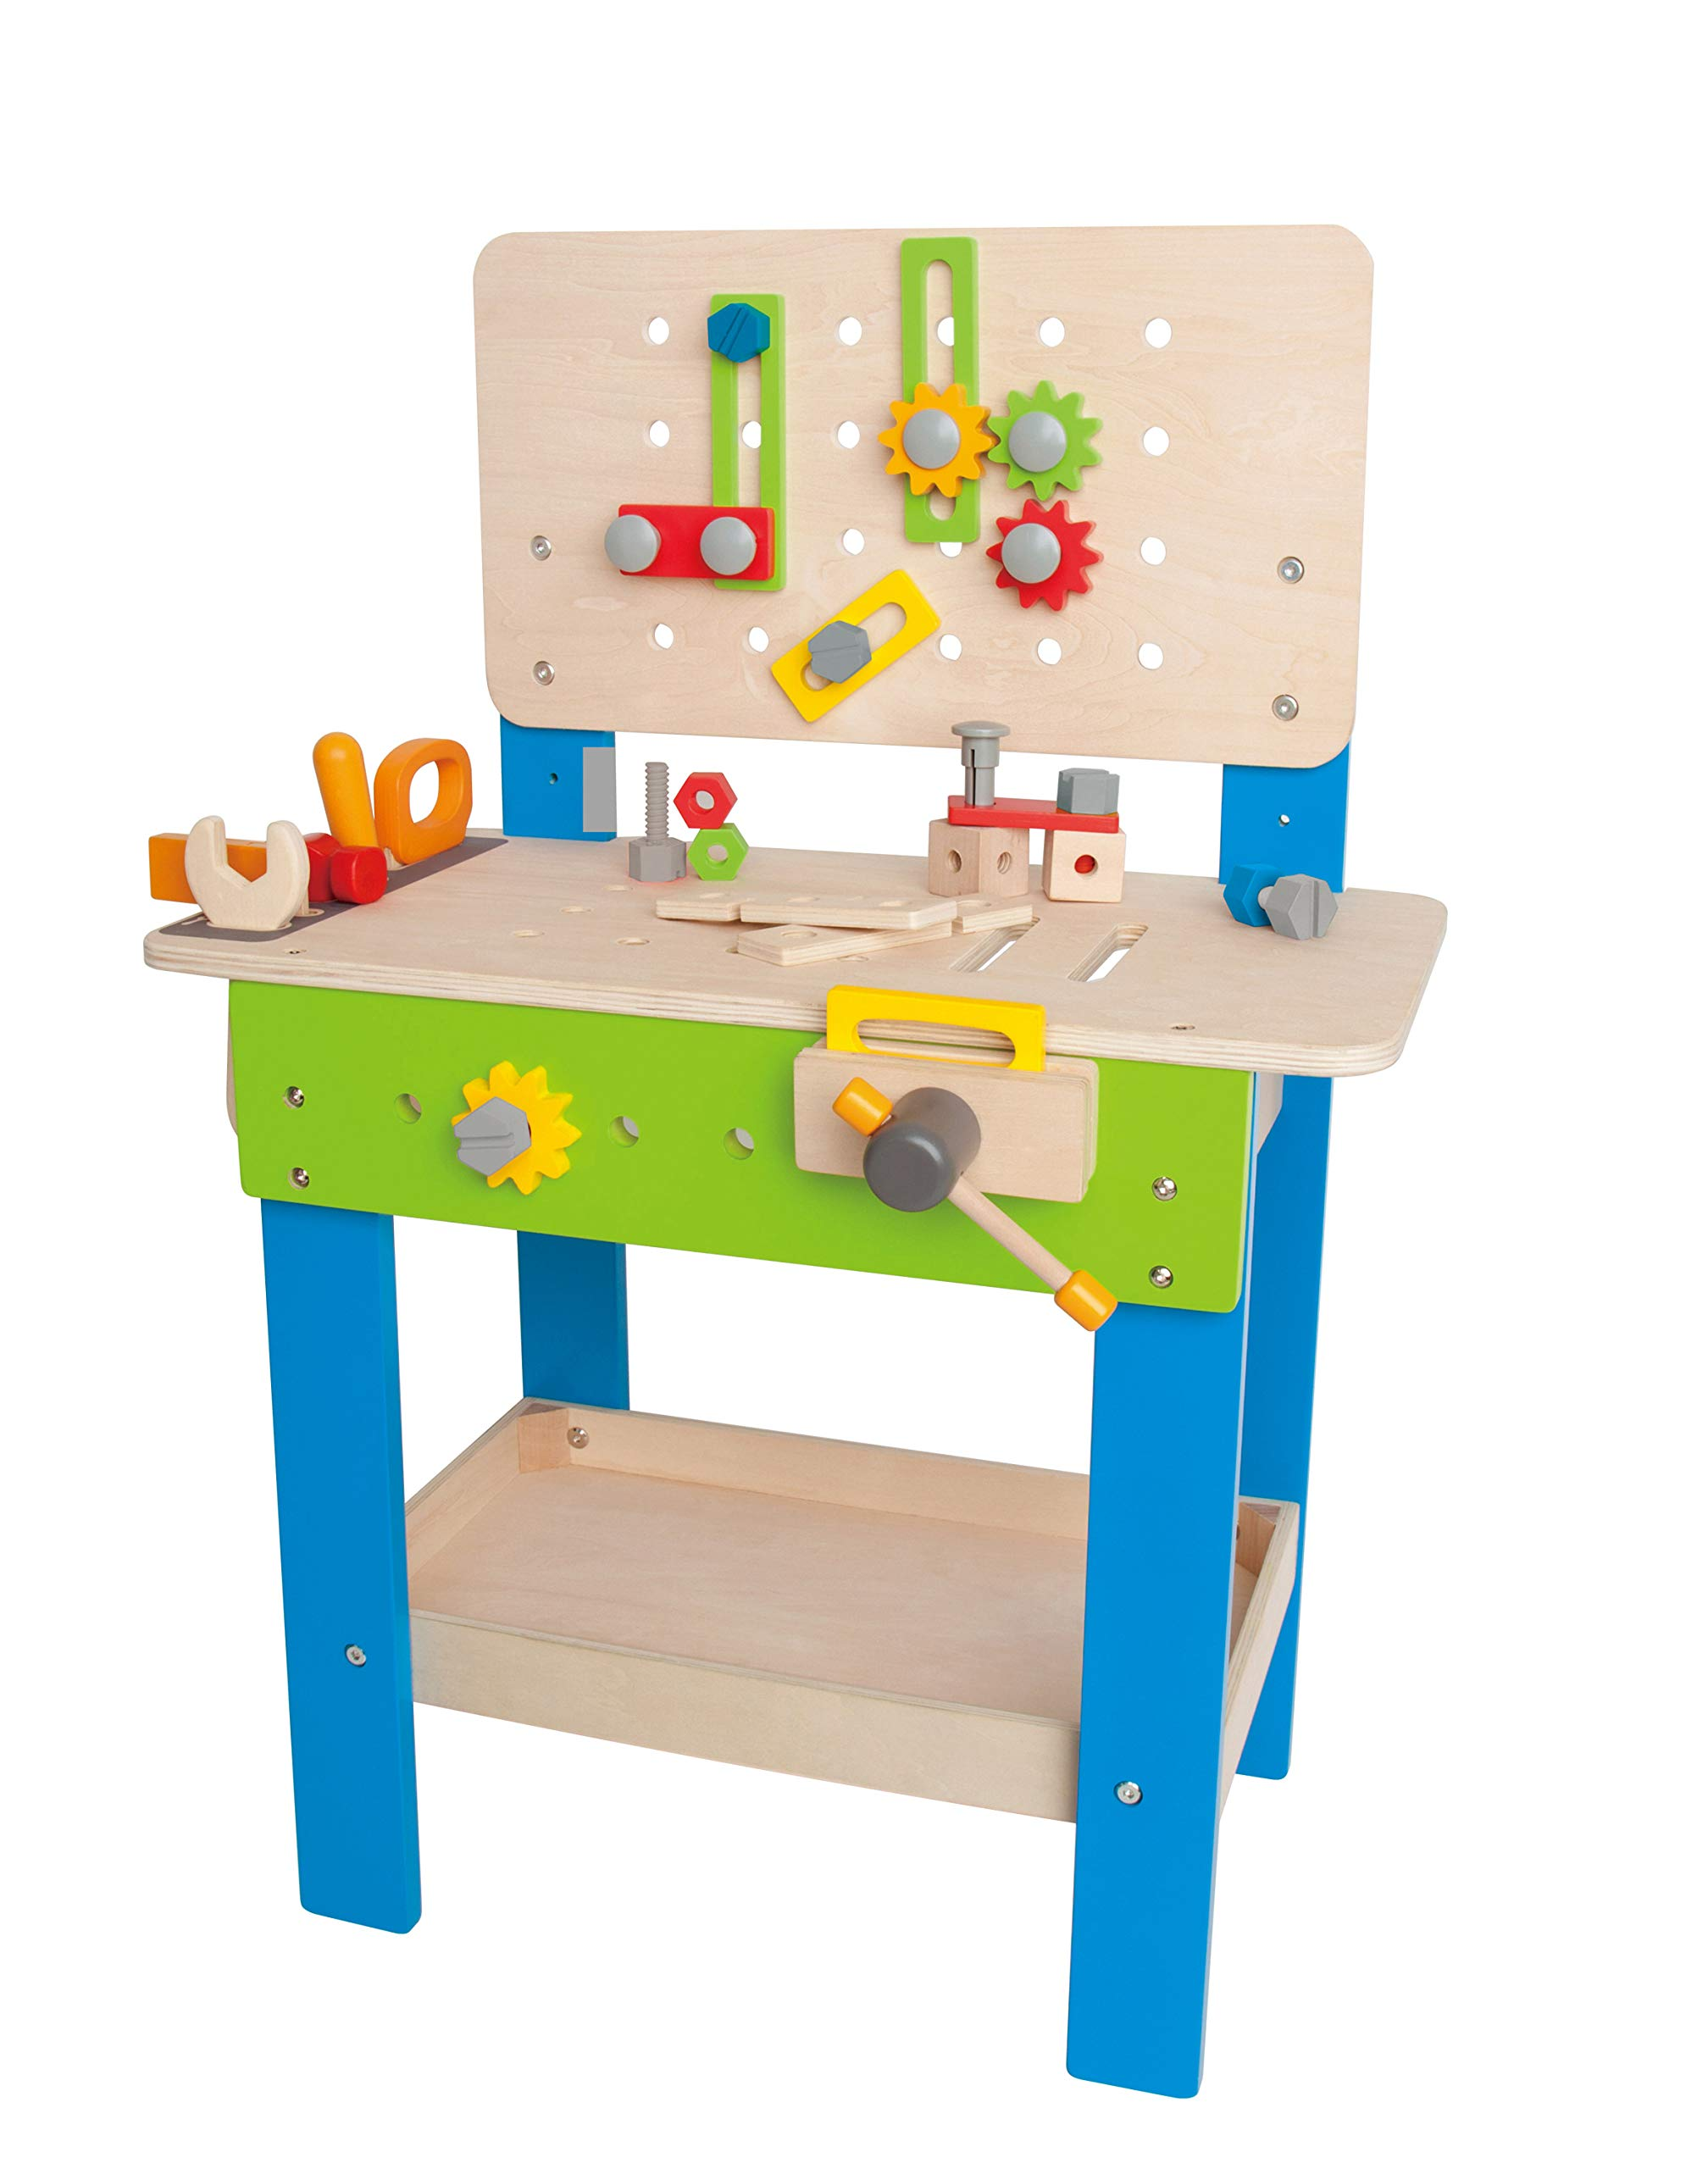 Master Workbench by Hape | Award Winning Kid's Wooden Tool Bench Toy Pretend Play Creative Building Set, Height Adjustable 35Piece Workshop for Toddlers by Hape